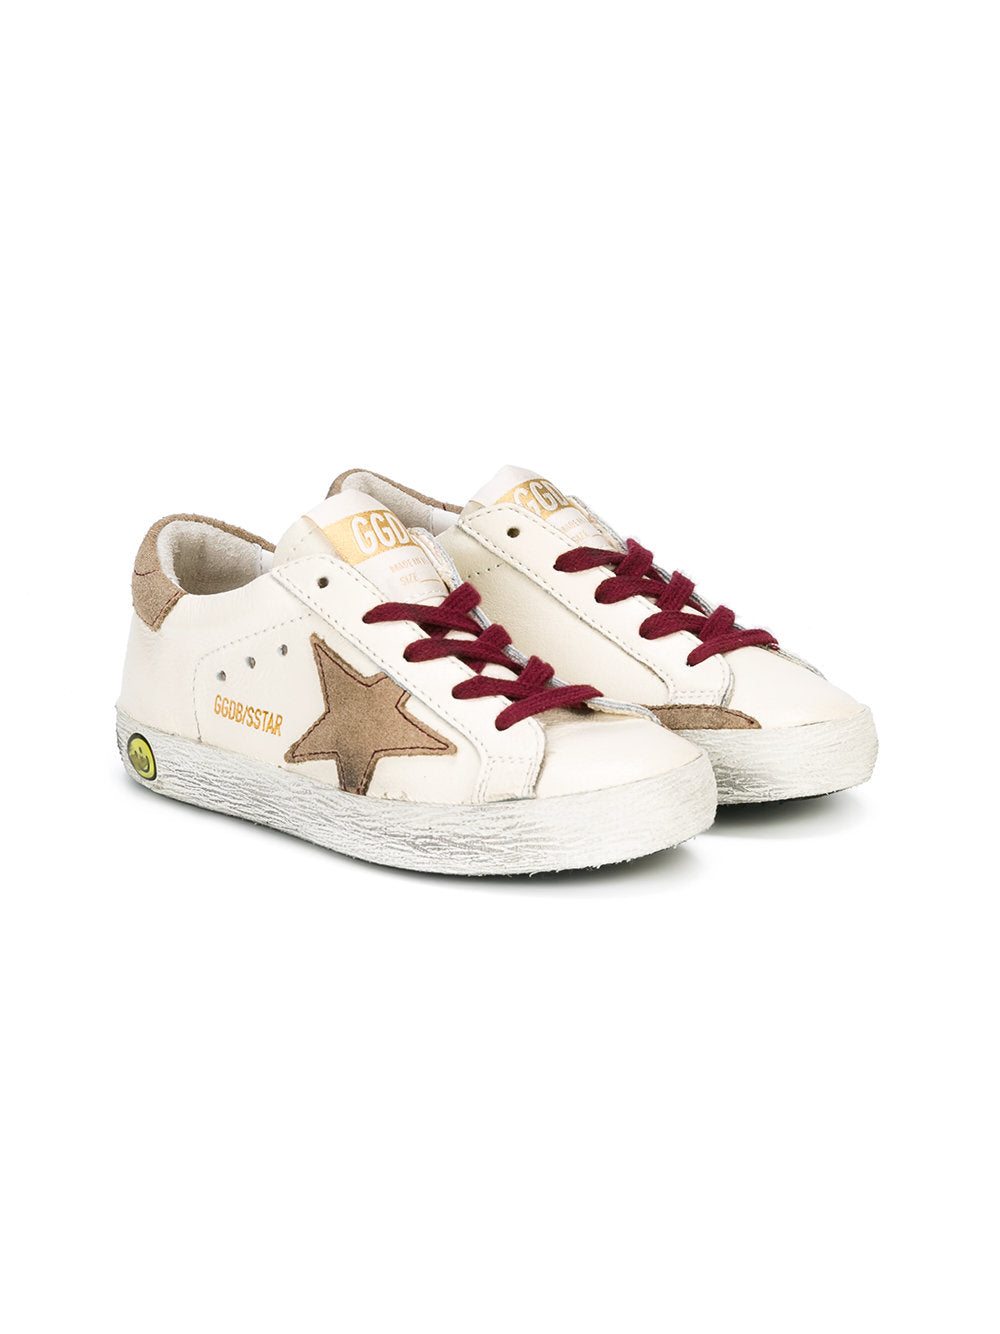 finest selection 13203 96306 superstar bordeaux